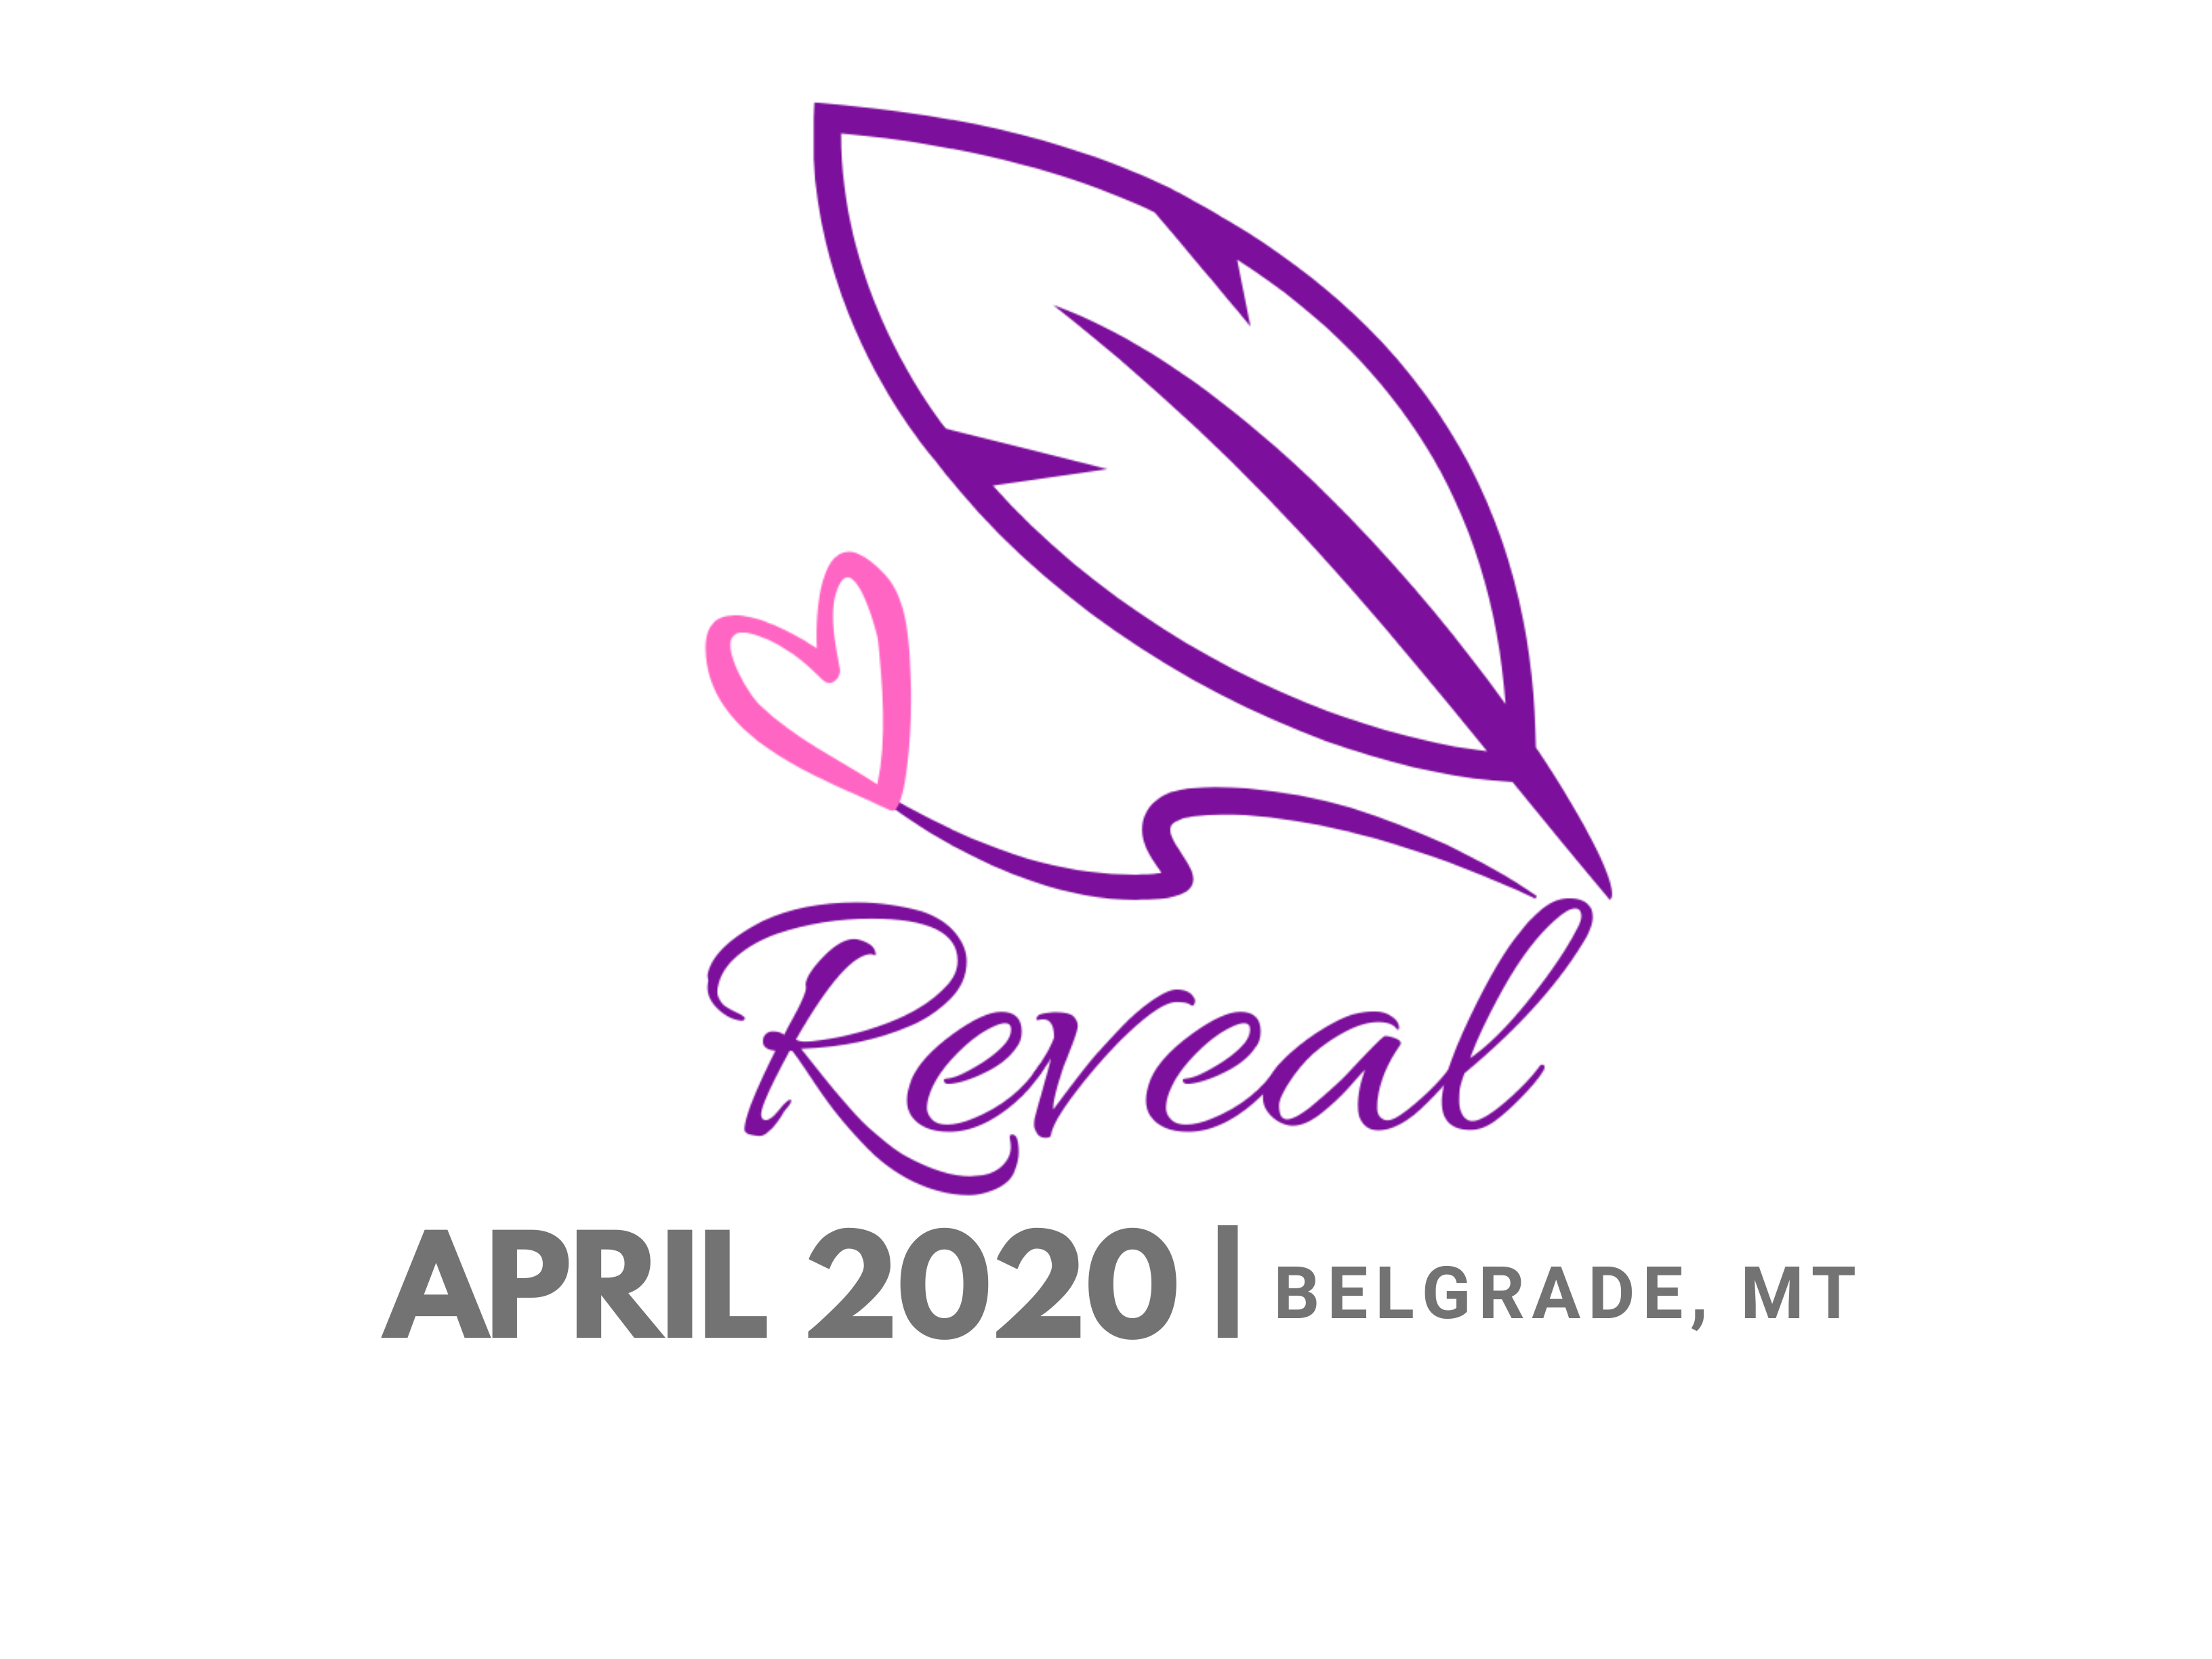 Reveal – What's Your Story?